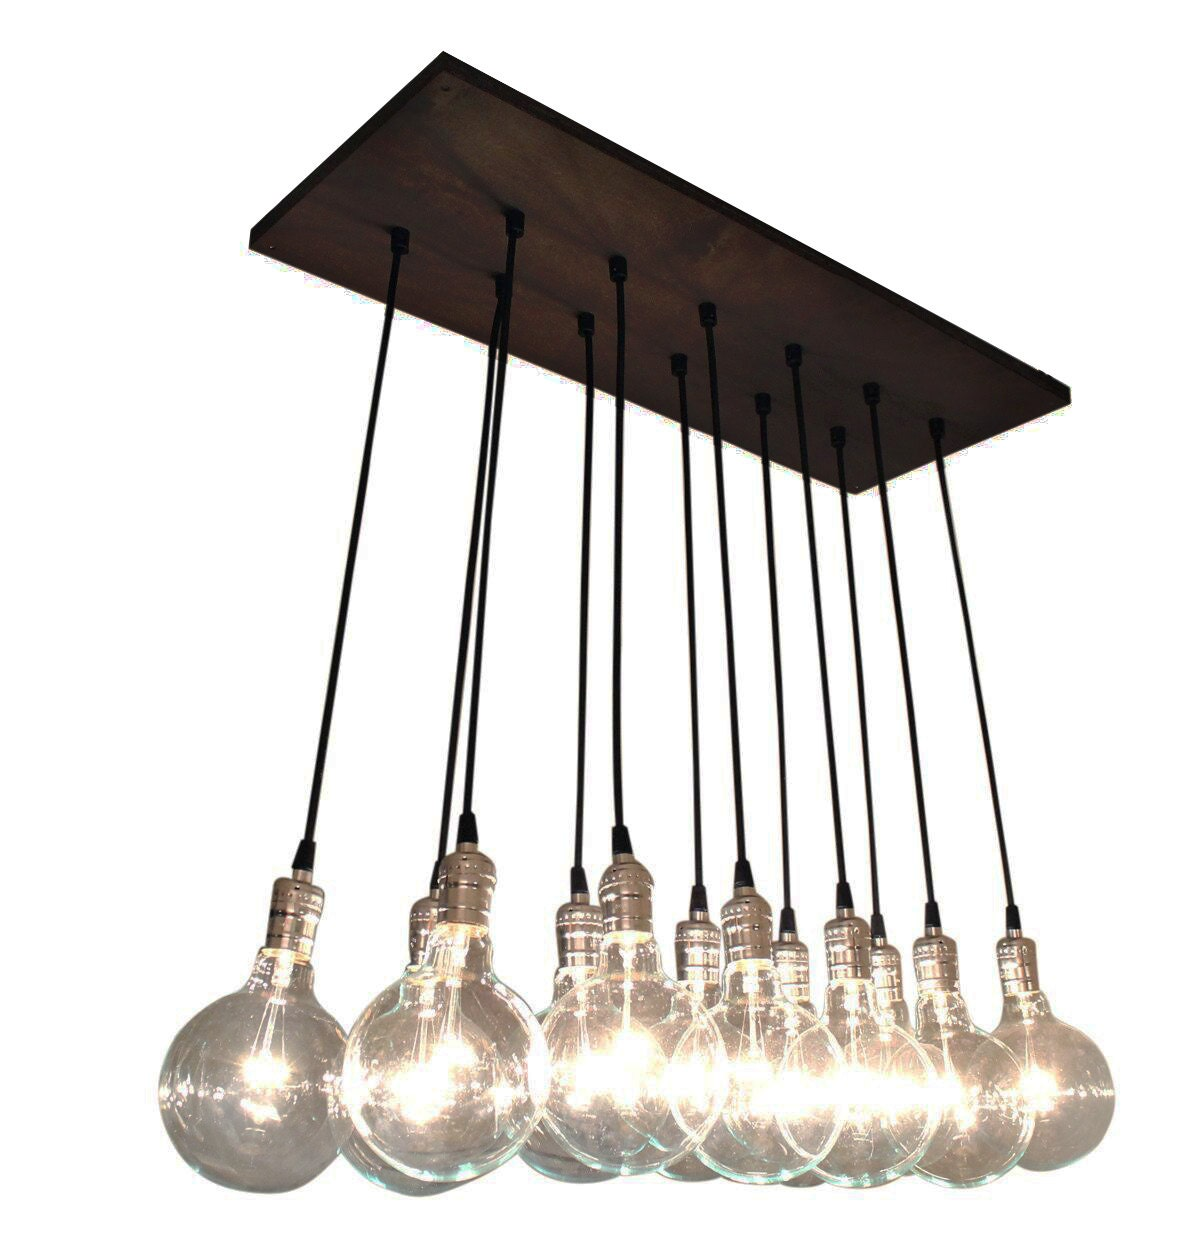 Urban Chic Chandelier With Exposed Bulbs Kitchen Lighting